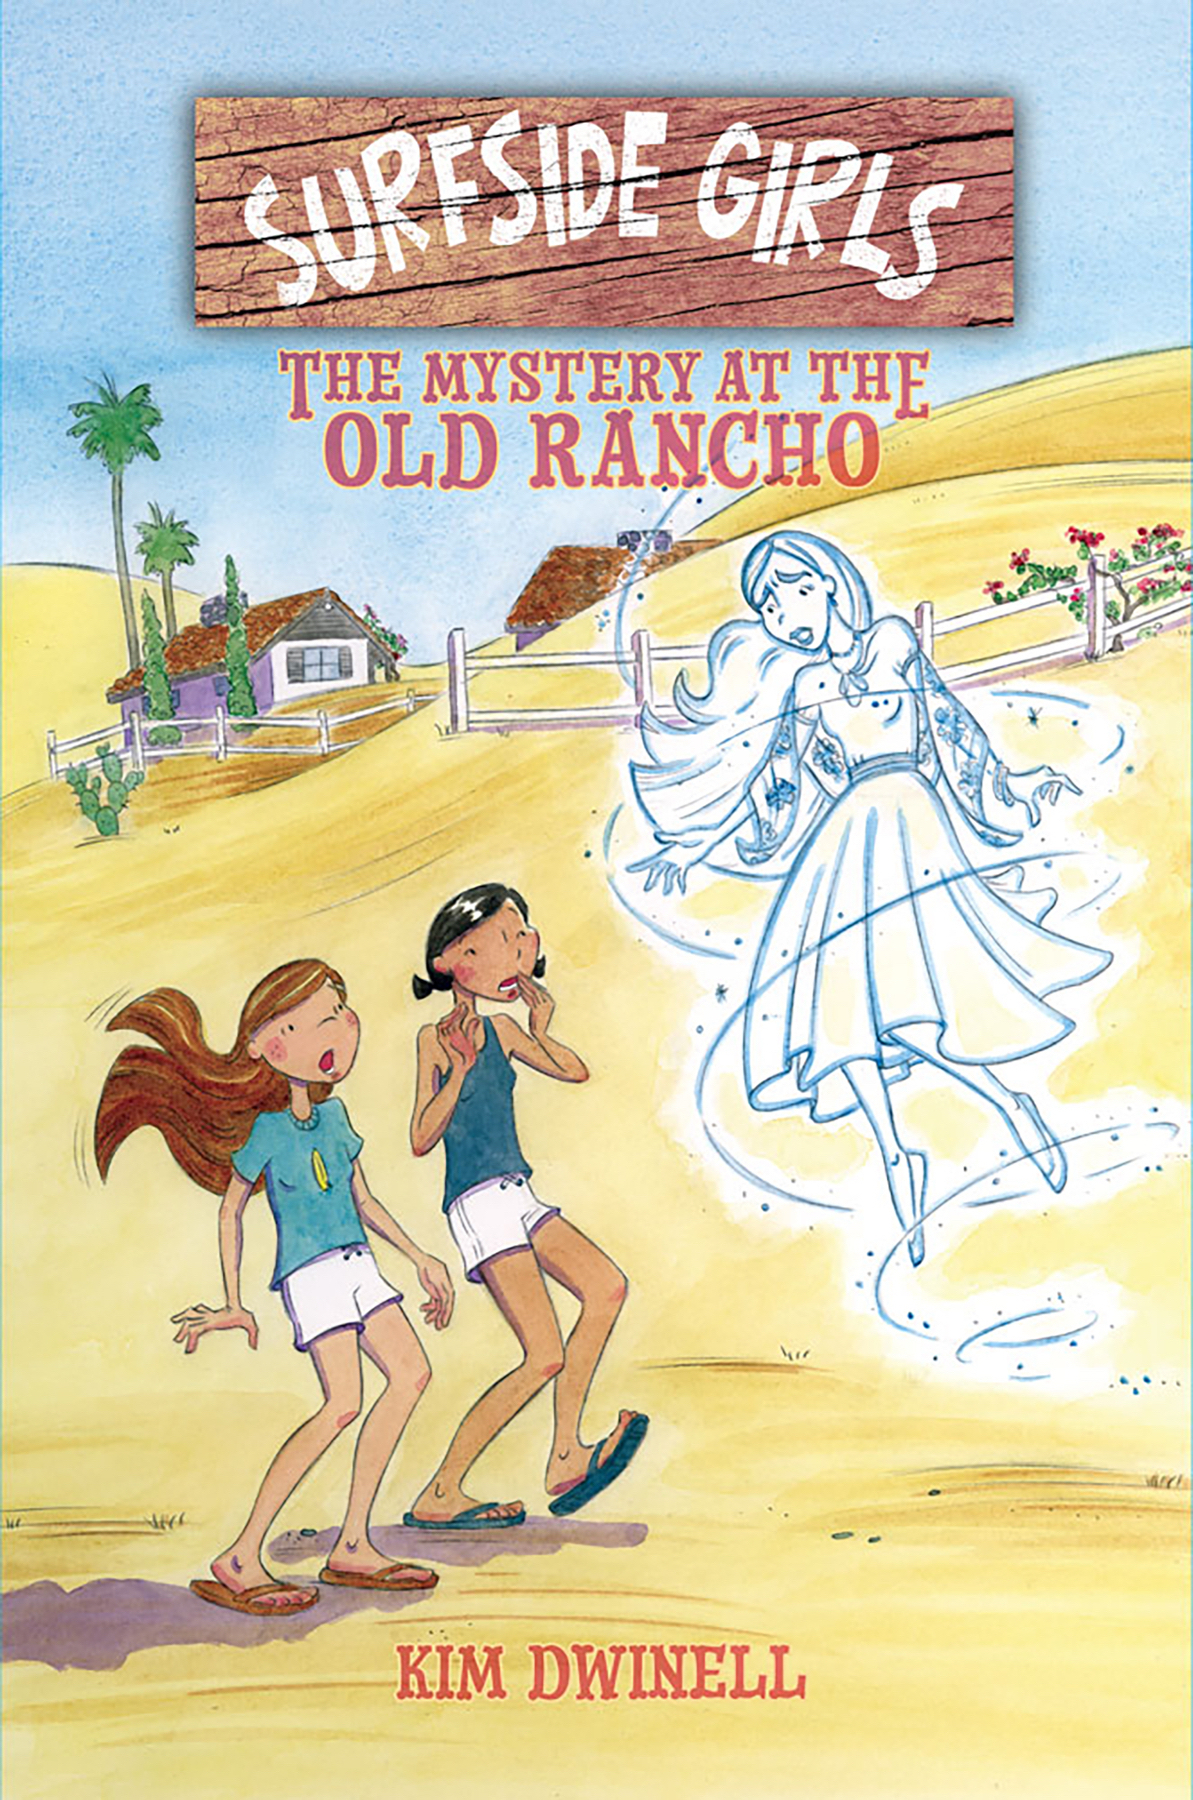 SURFSIDE GIRLS GN VOL 02 MYSTERY AT OLD RANCHO